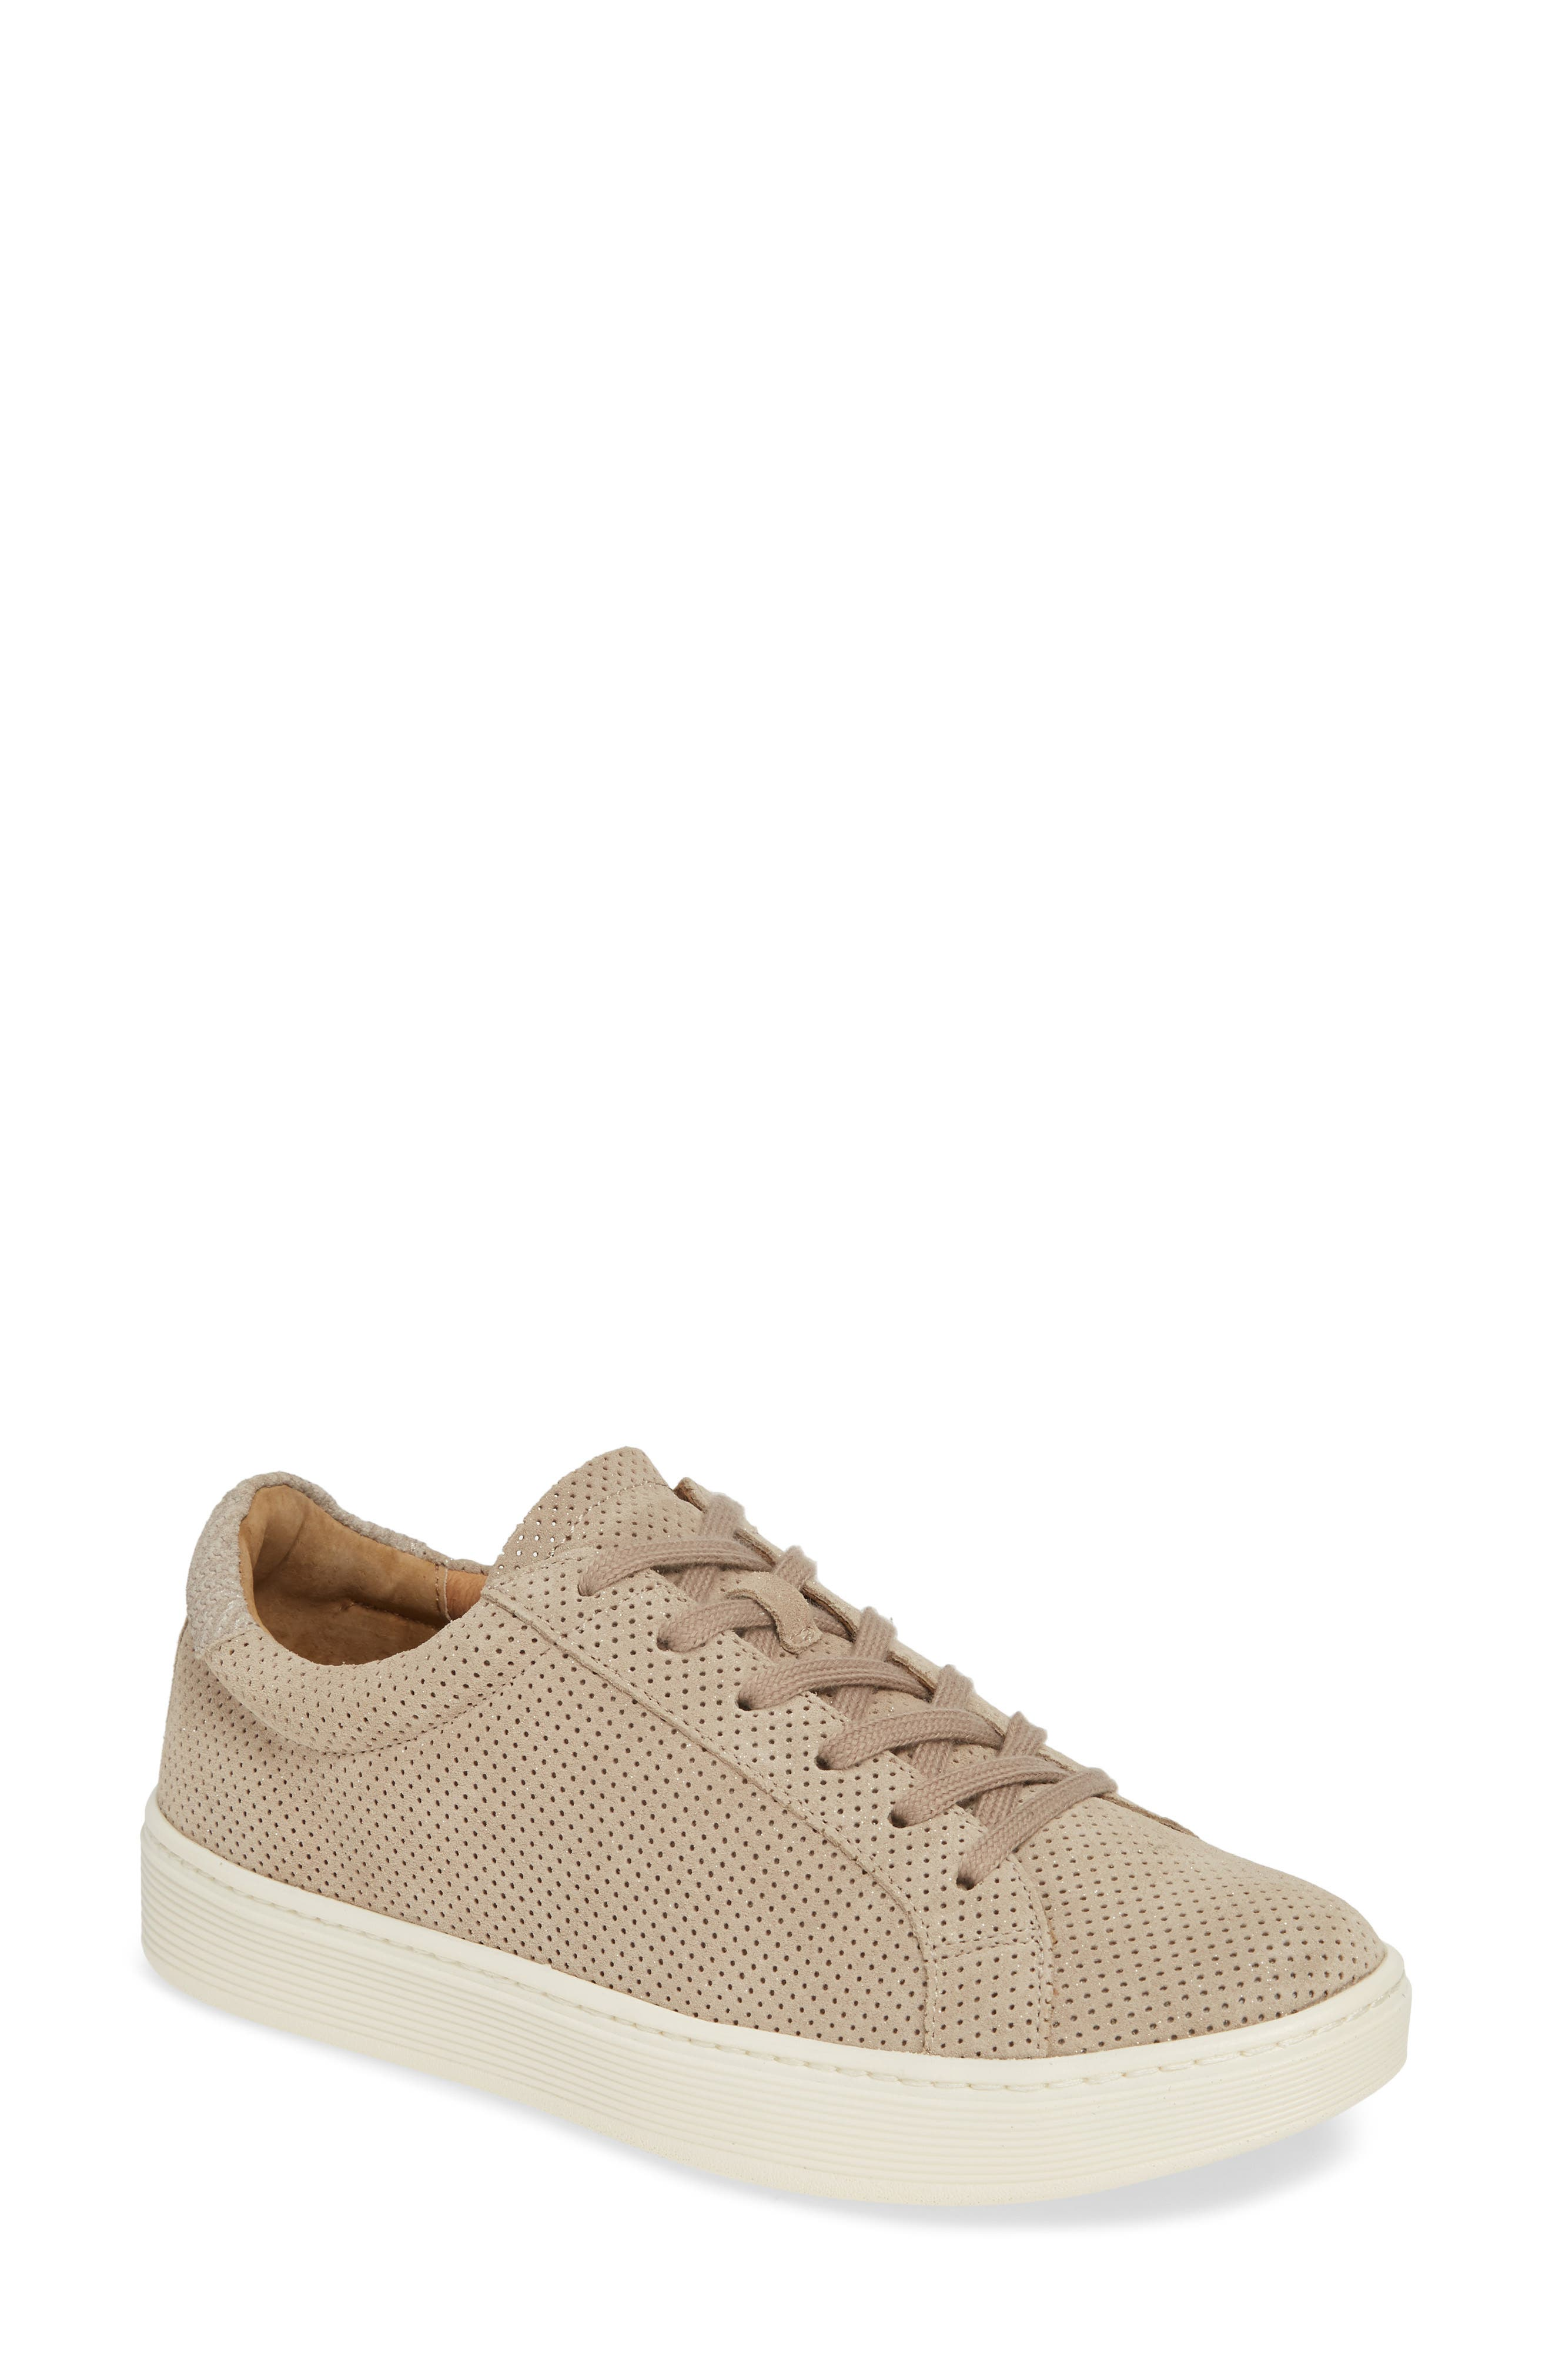 SÖFFT Somers Perforated Sneaker, Main, color, MOONSTONE GREY SUEDE